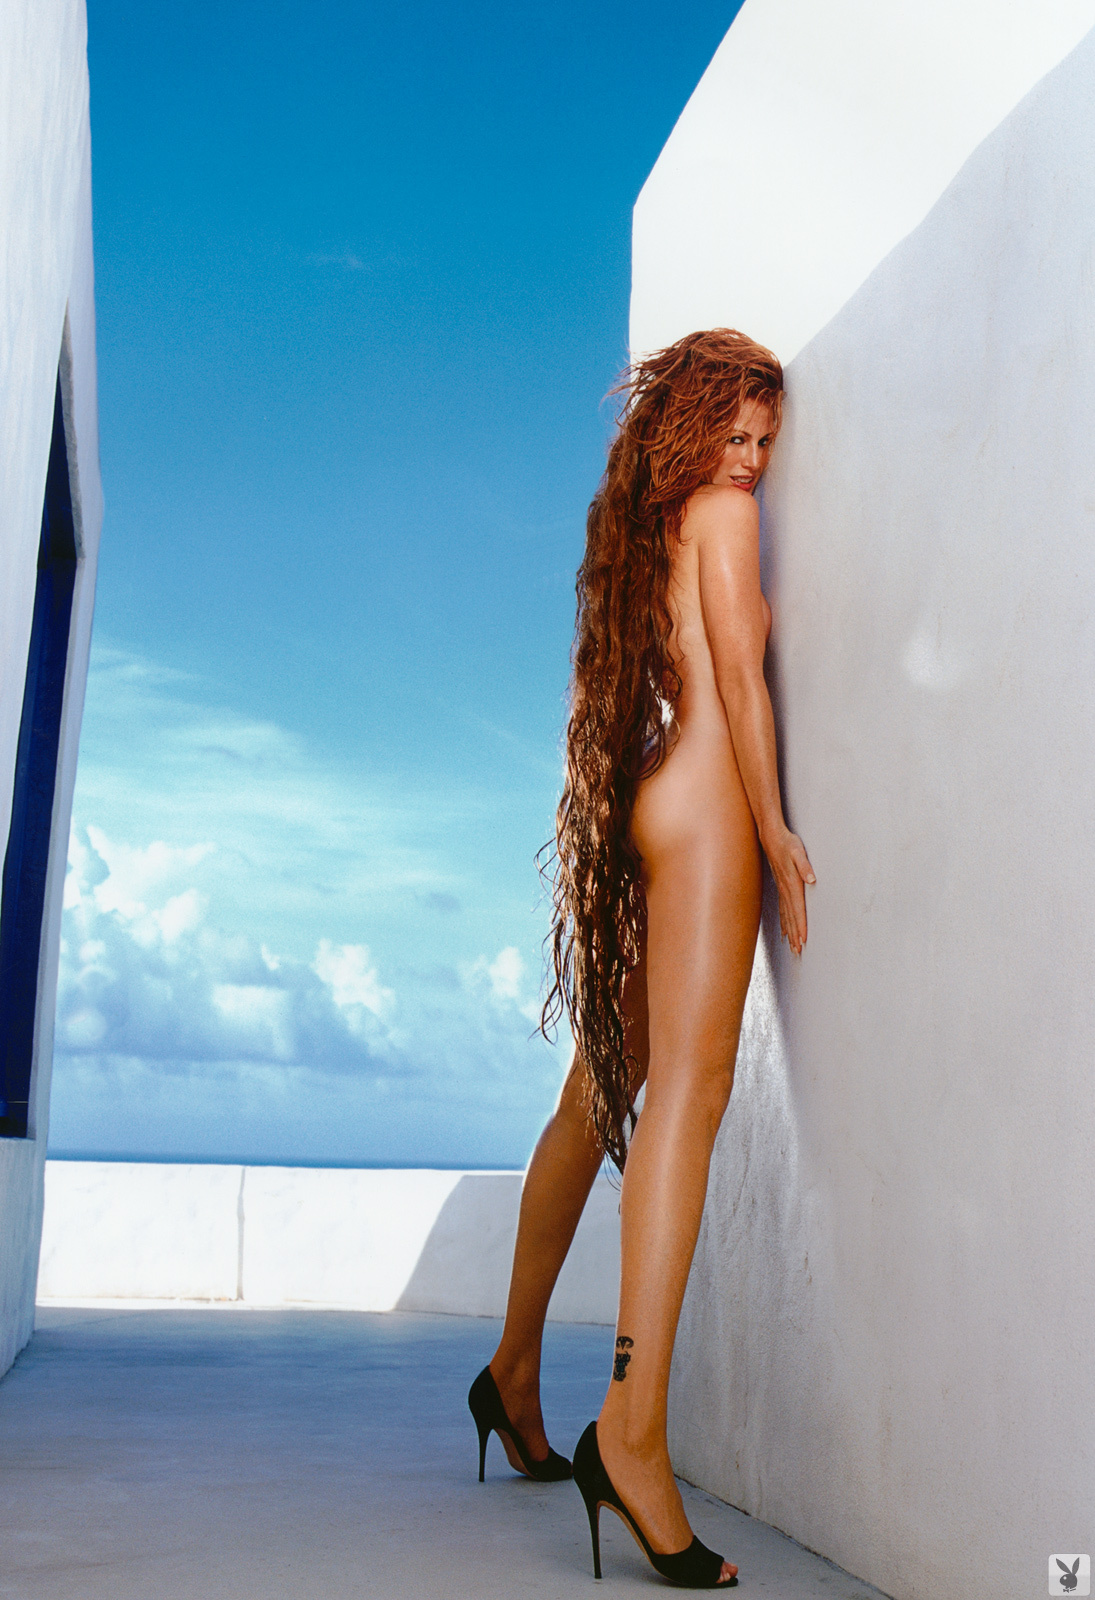 Angie Everhart  - This beautif playboyplus @angie-everhart